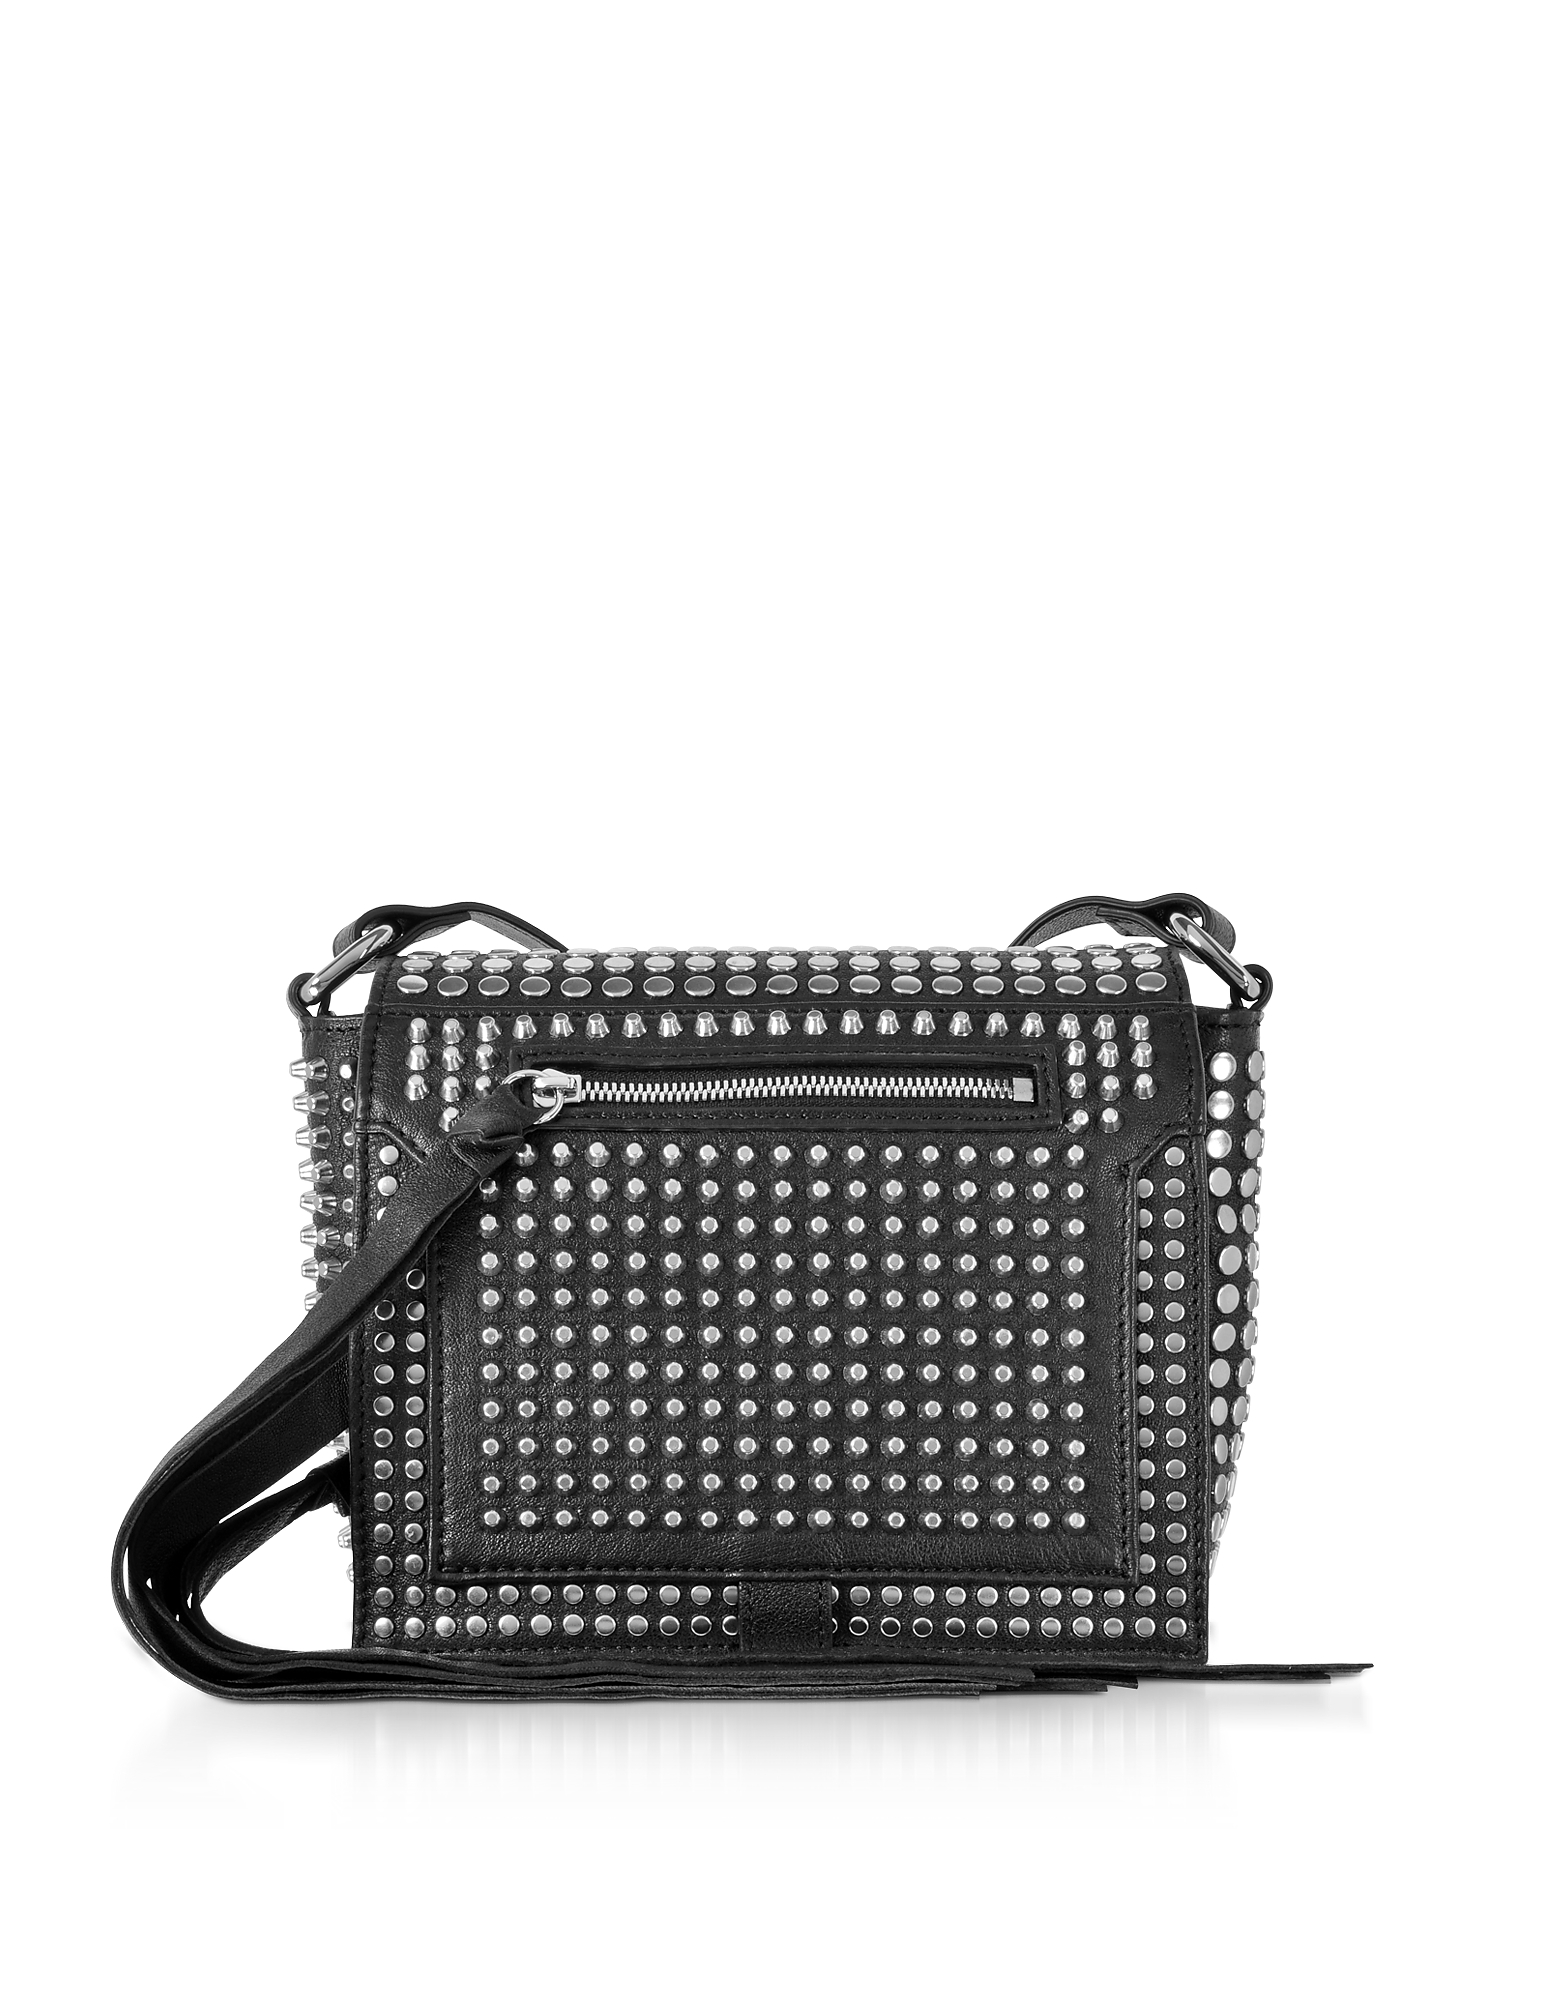 McQ Alexander McQueen Handbags, Black Studded Leather Leather Mini Crossbody Bag